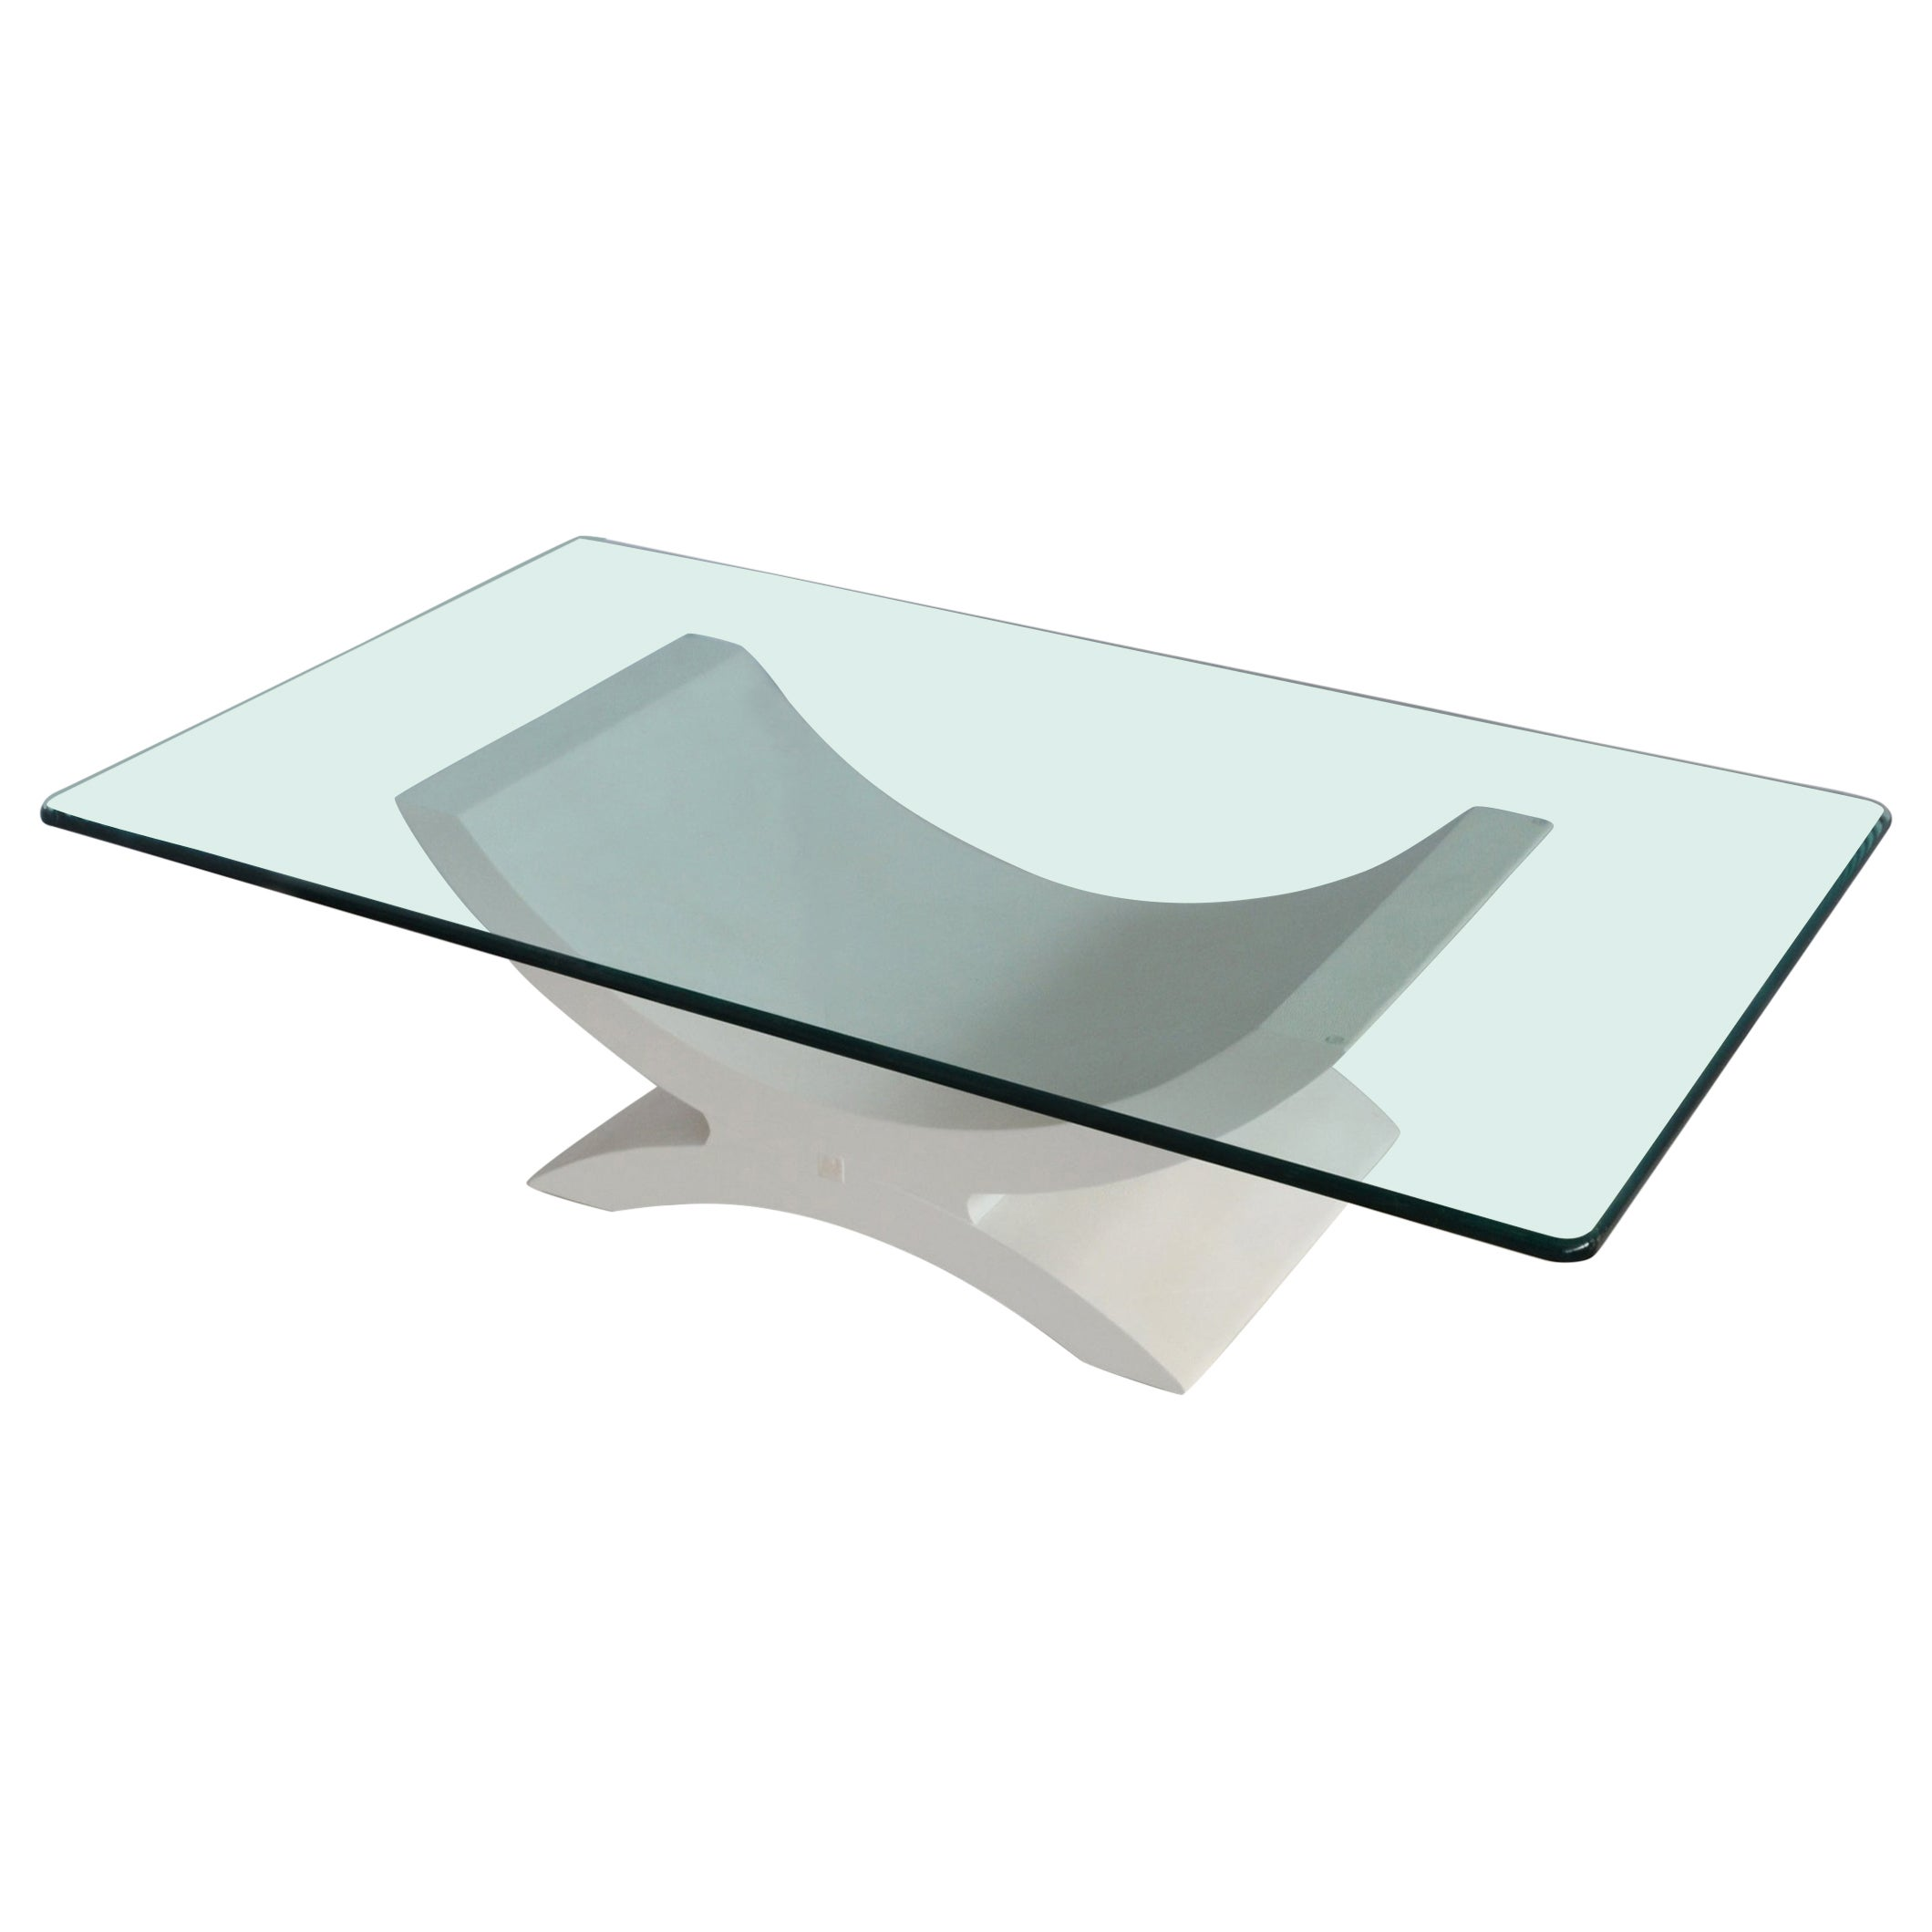 Rectangular Coffee Table Crystal Top Wood Base White Ecological Shagreen Details